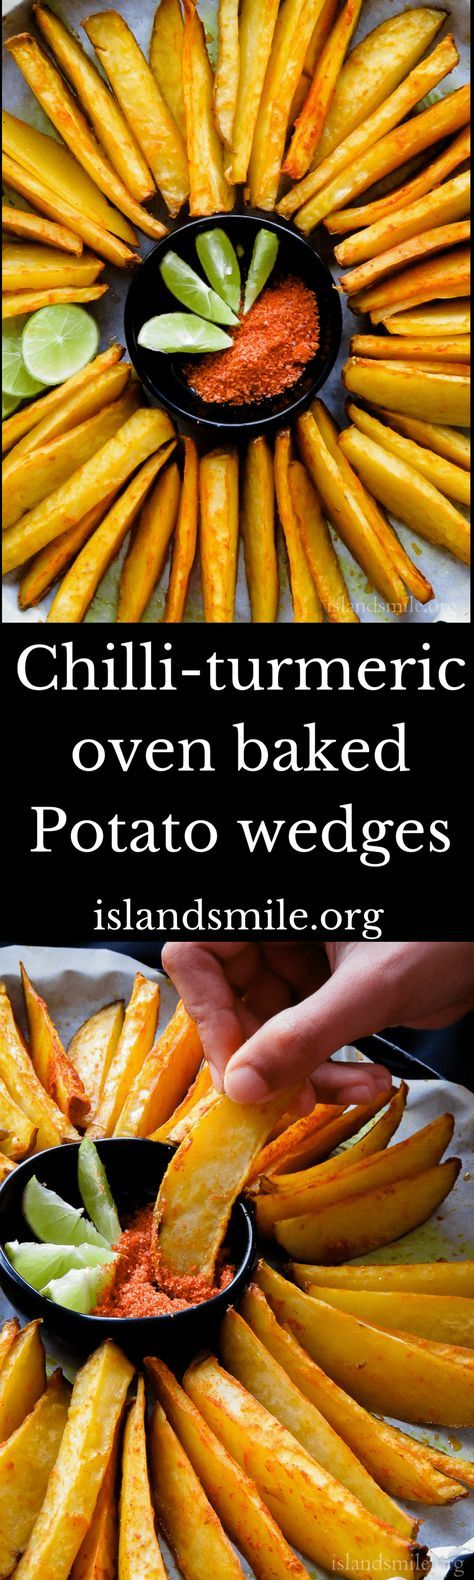 crispy potato oven fries with chilli and turmeric(5 ingredient). | Island smile